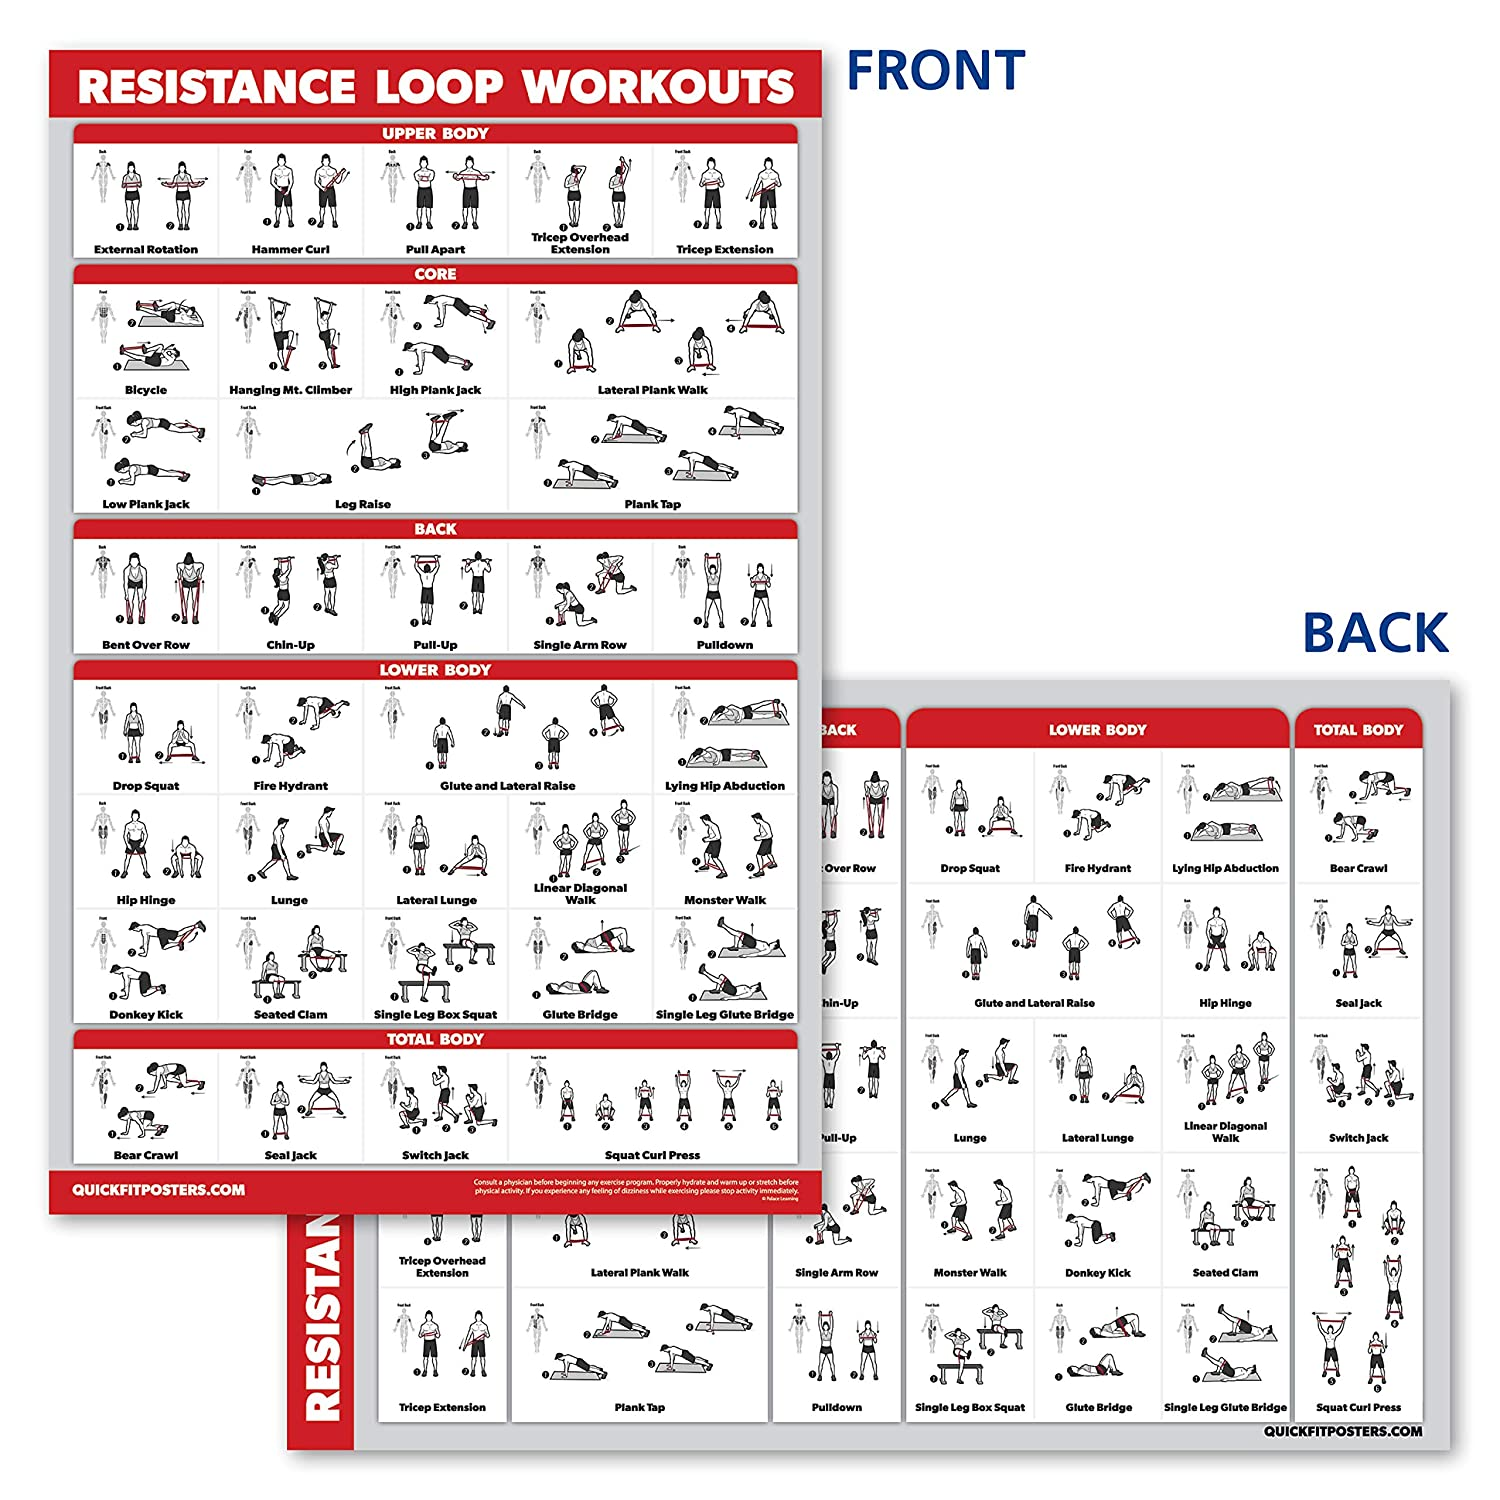 QuickFit Resistance Loop Bands Workout Poster 18 x 27 Laminated Exercise Chart for Resistance Band Loops